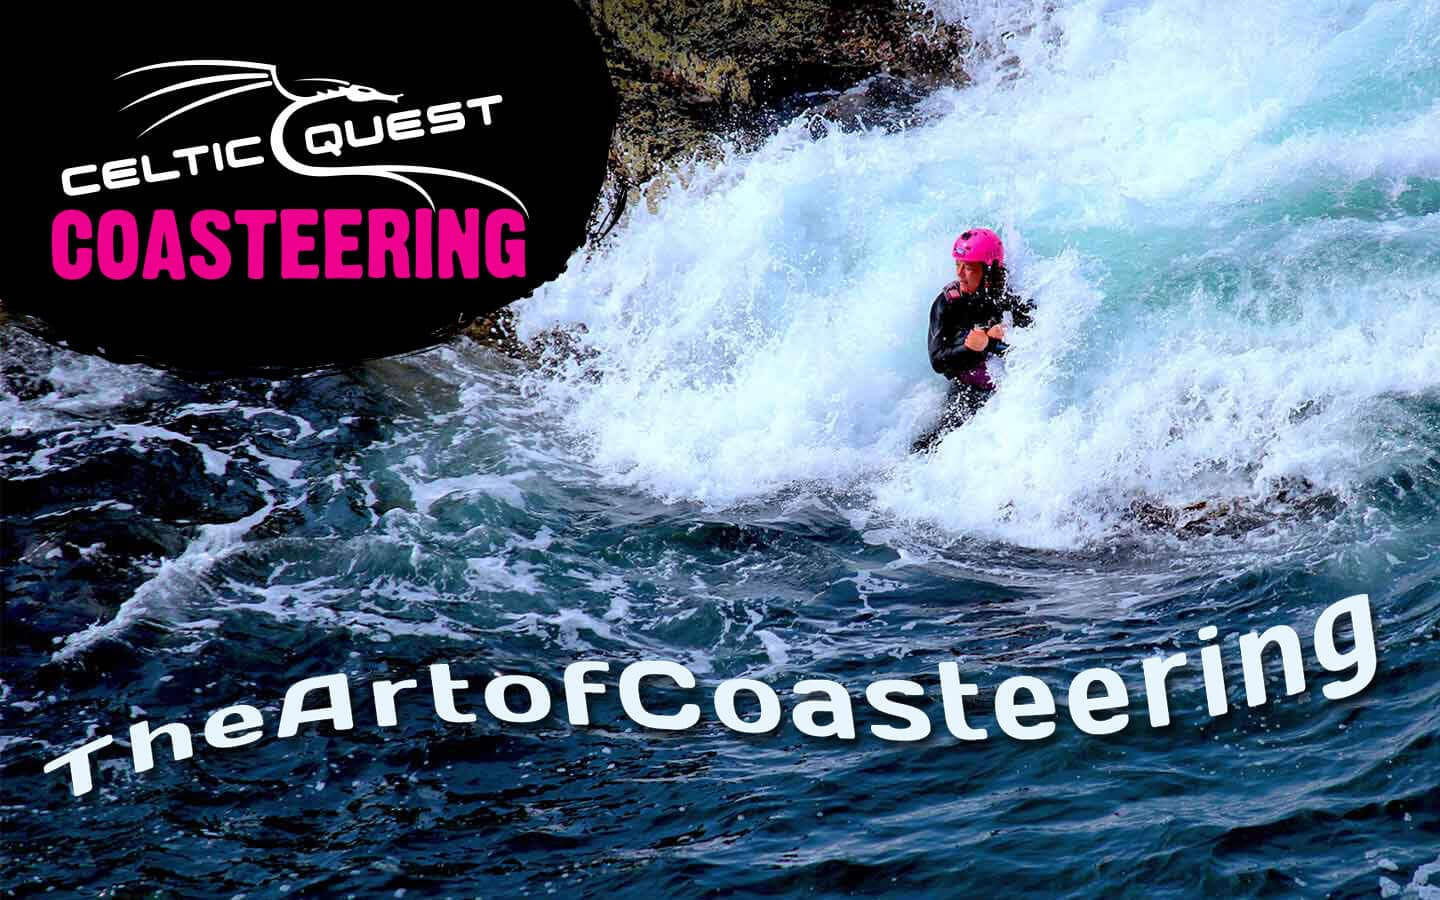 Celtic Quest Coasteering - join us for a fun family adventure Coasteering in Pembrokeshire Wales. Meet us at Abereiddy Blue Lagoon near St Davids, book online on our website!